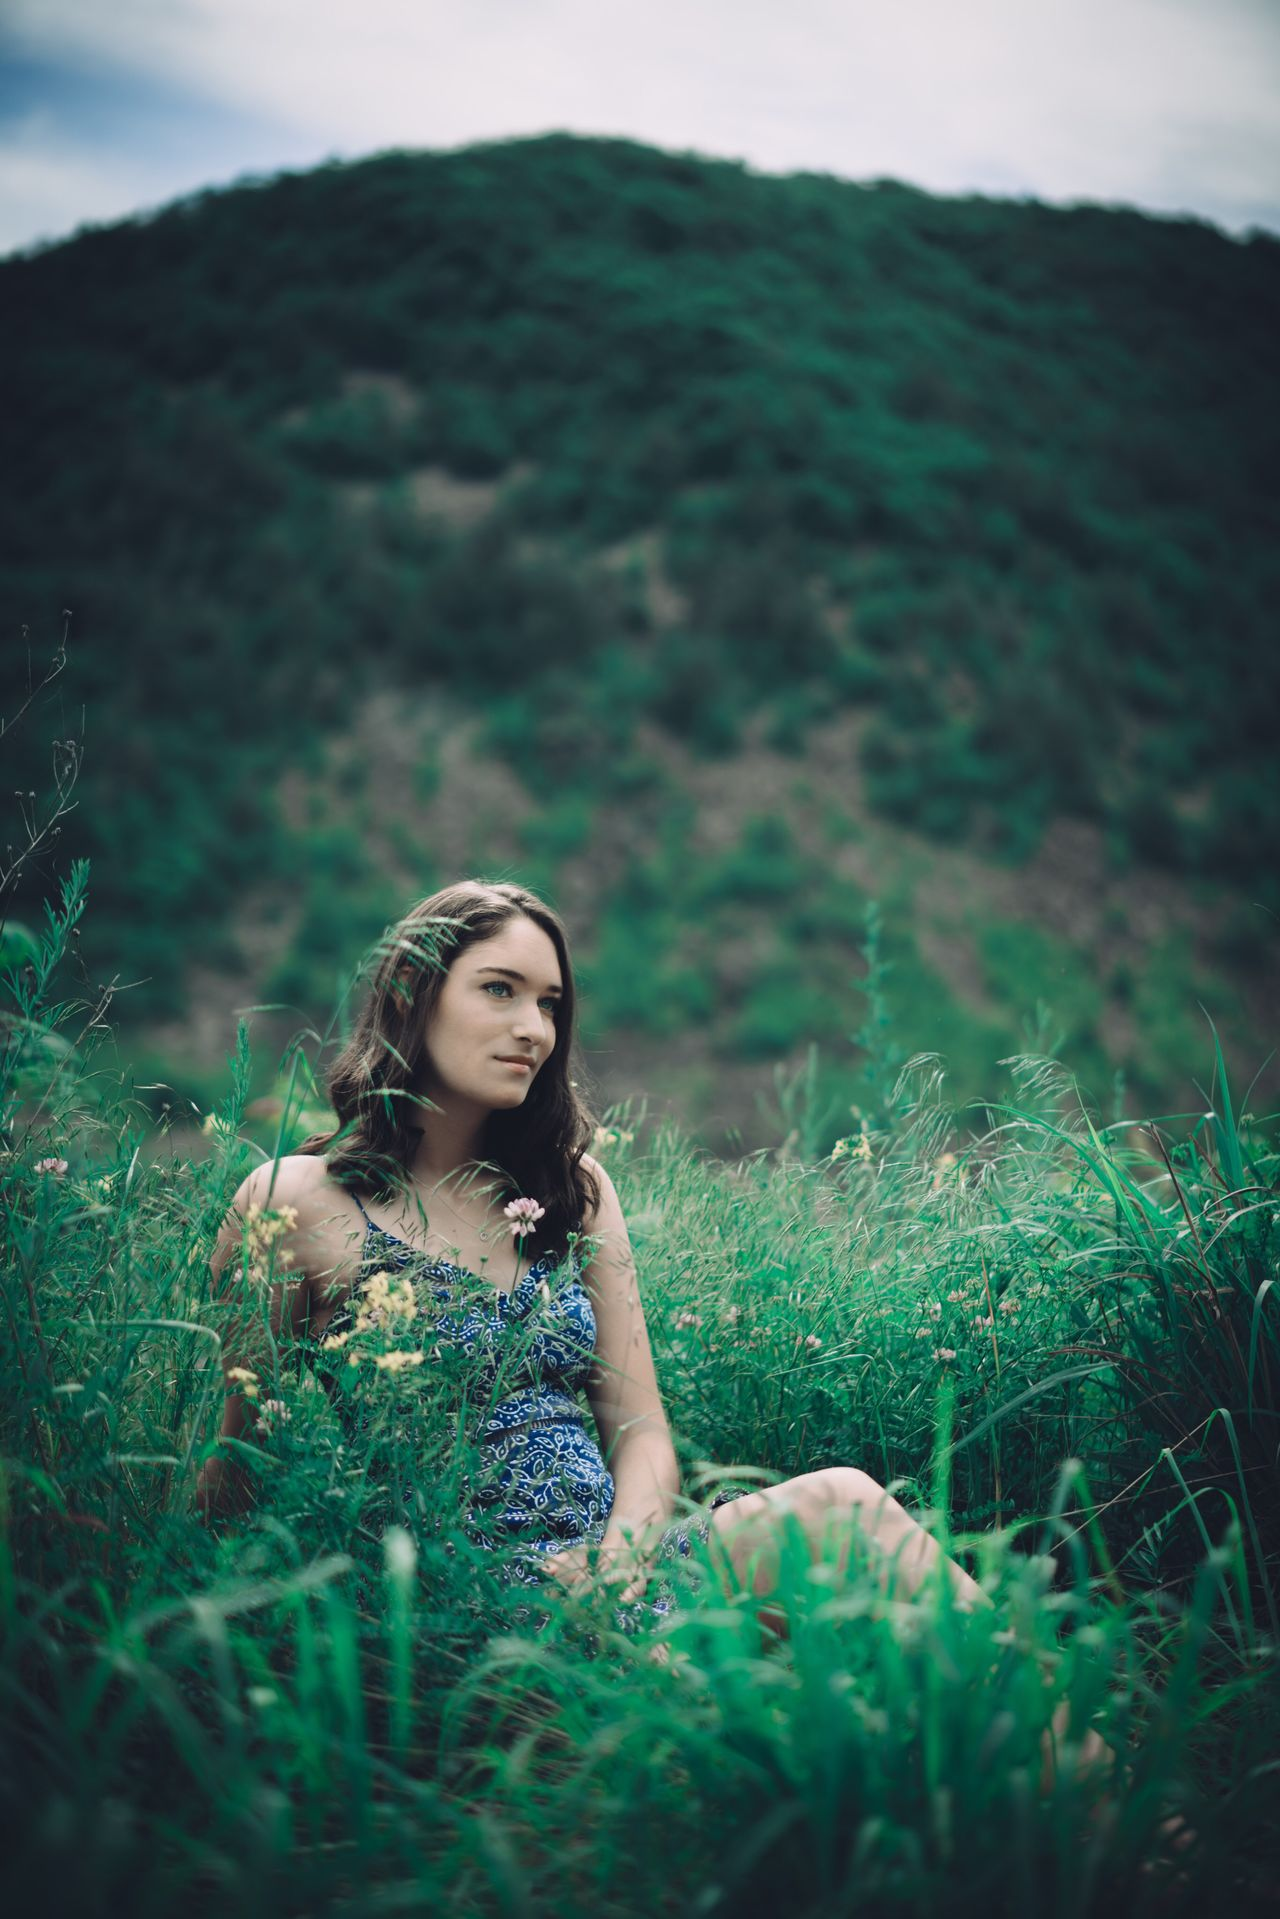 Grass One Person Young Adult Outdoors Field Nature Beautiful Woman Young Women Leisure Activity Day Plant Landscape Beauty In Nature Sitting Women Sky Close-up People The Great Outdoors - 2017 EyeEm Awards